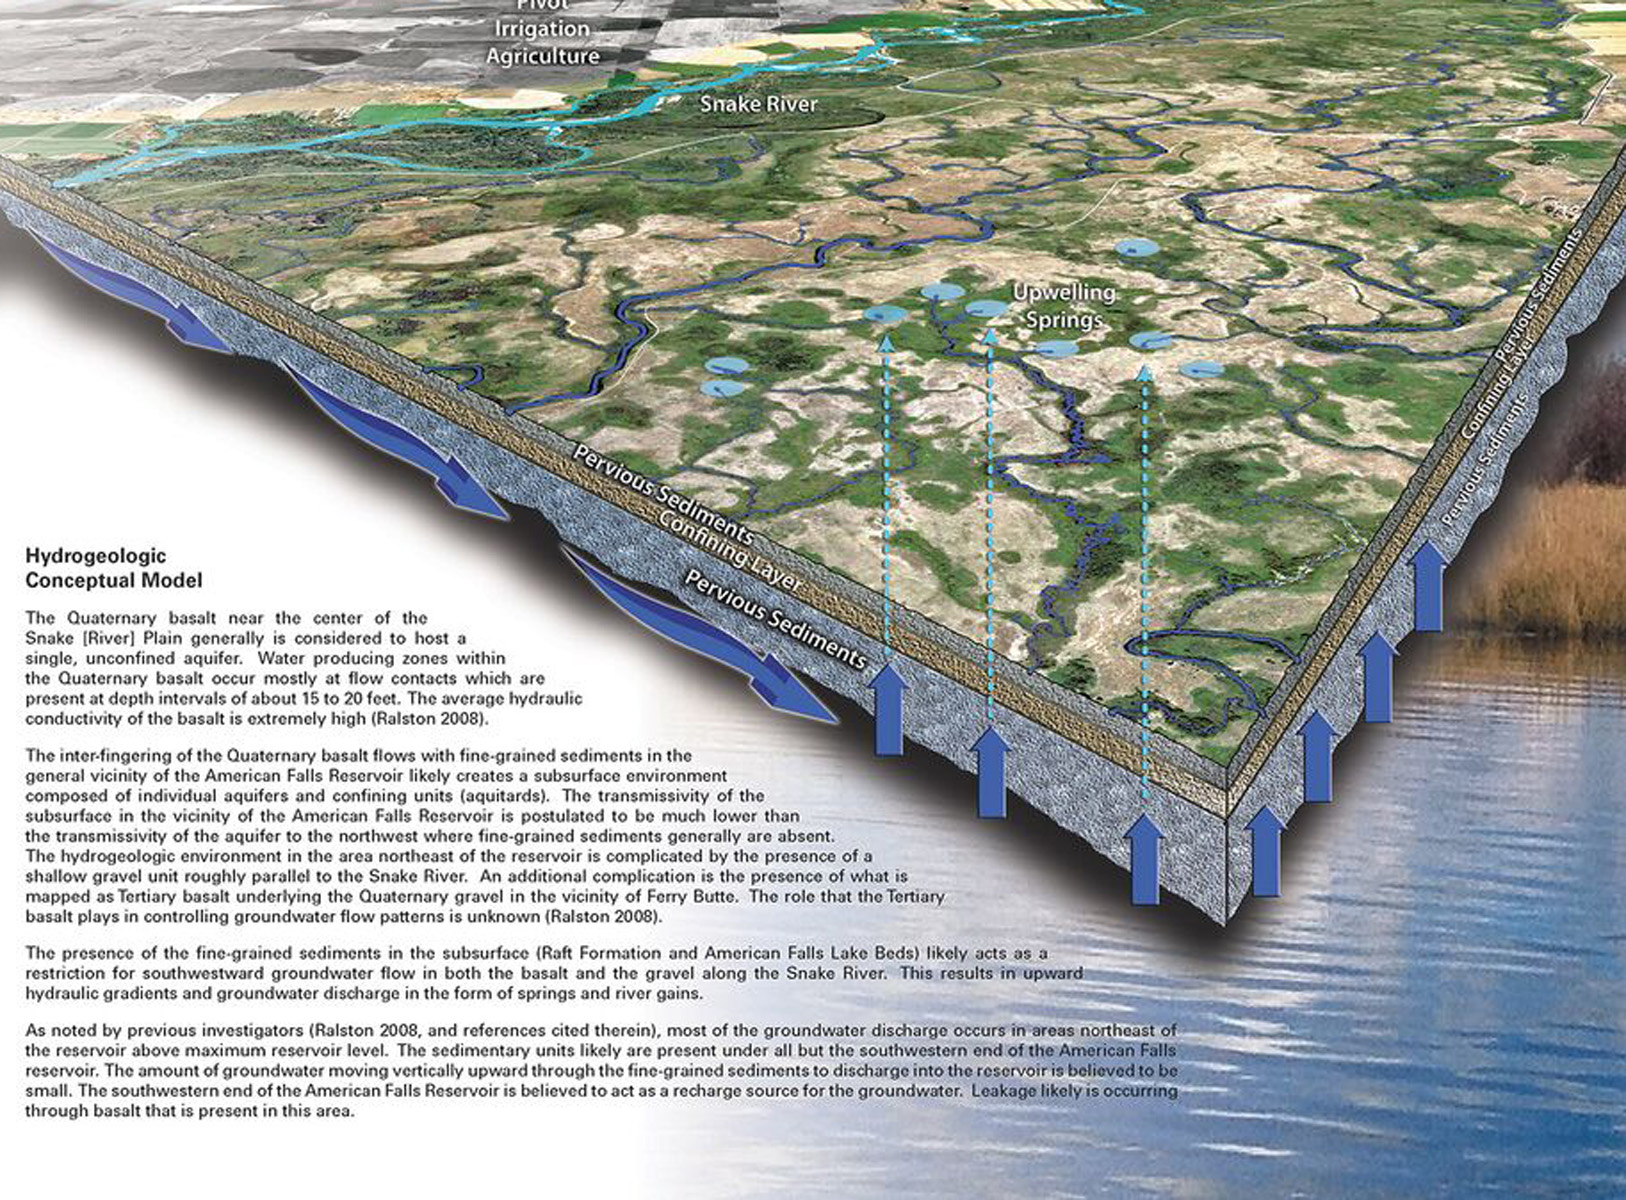 Spring Atlas and Landscape Enhancement Strategy, Fort Hall,  Idaho - Research Conservation Category. - EcoSystems Sciences